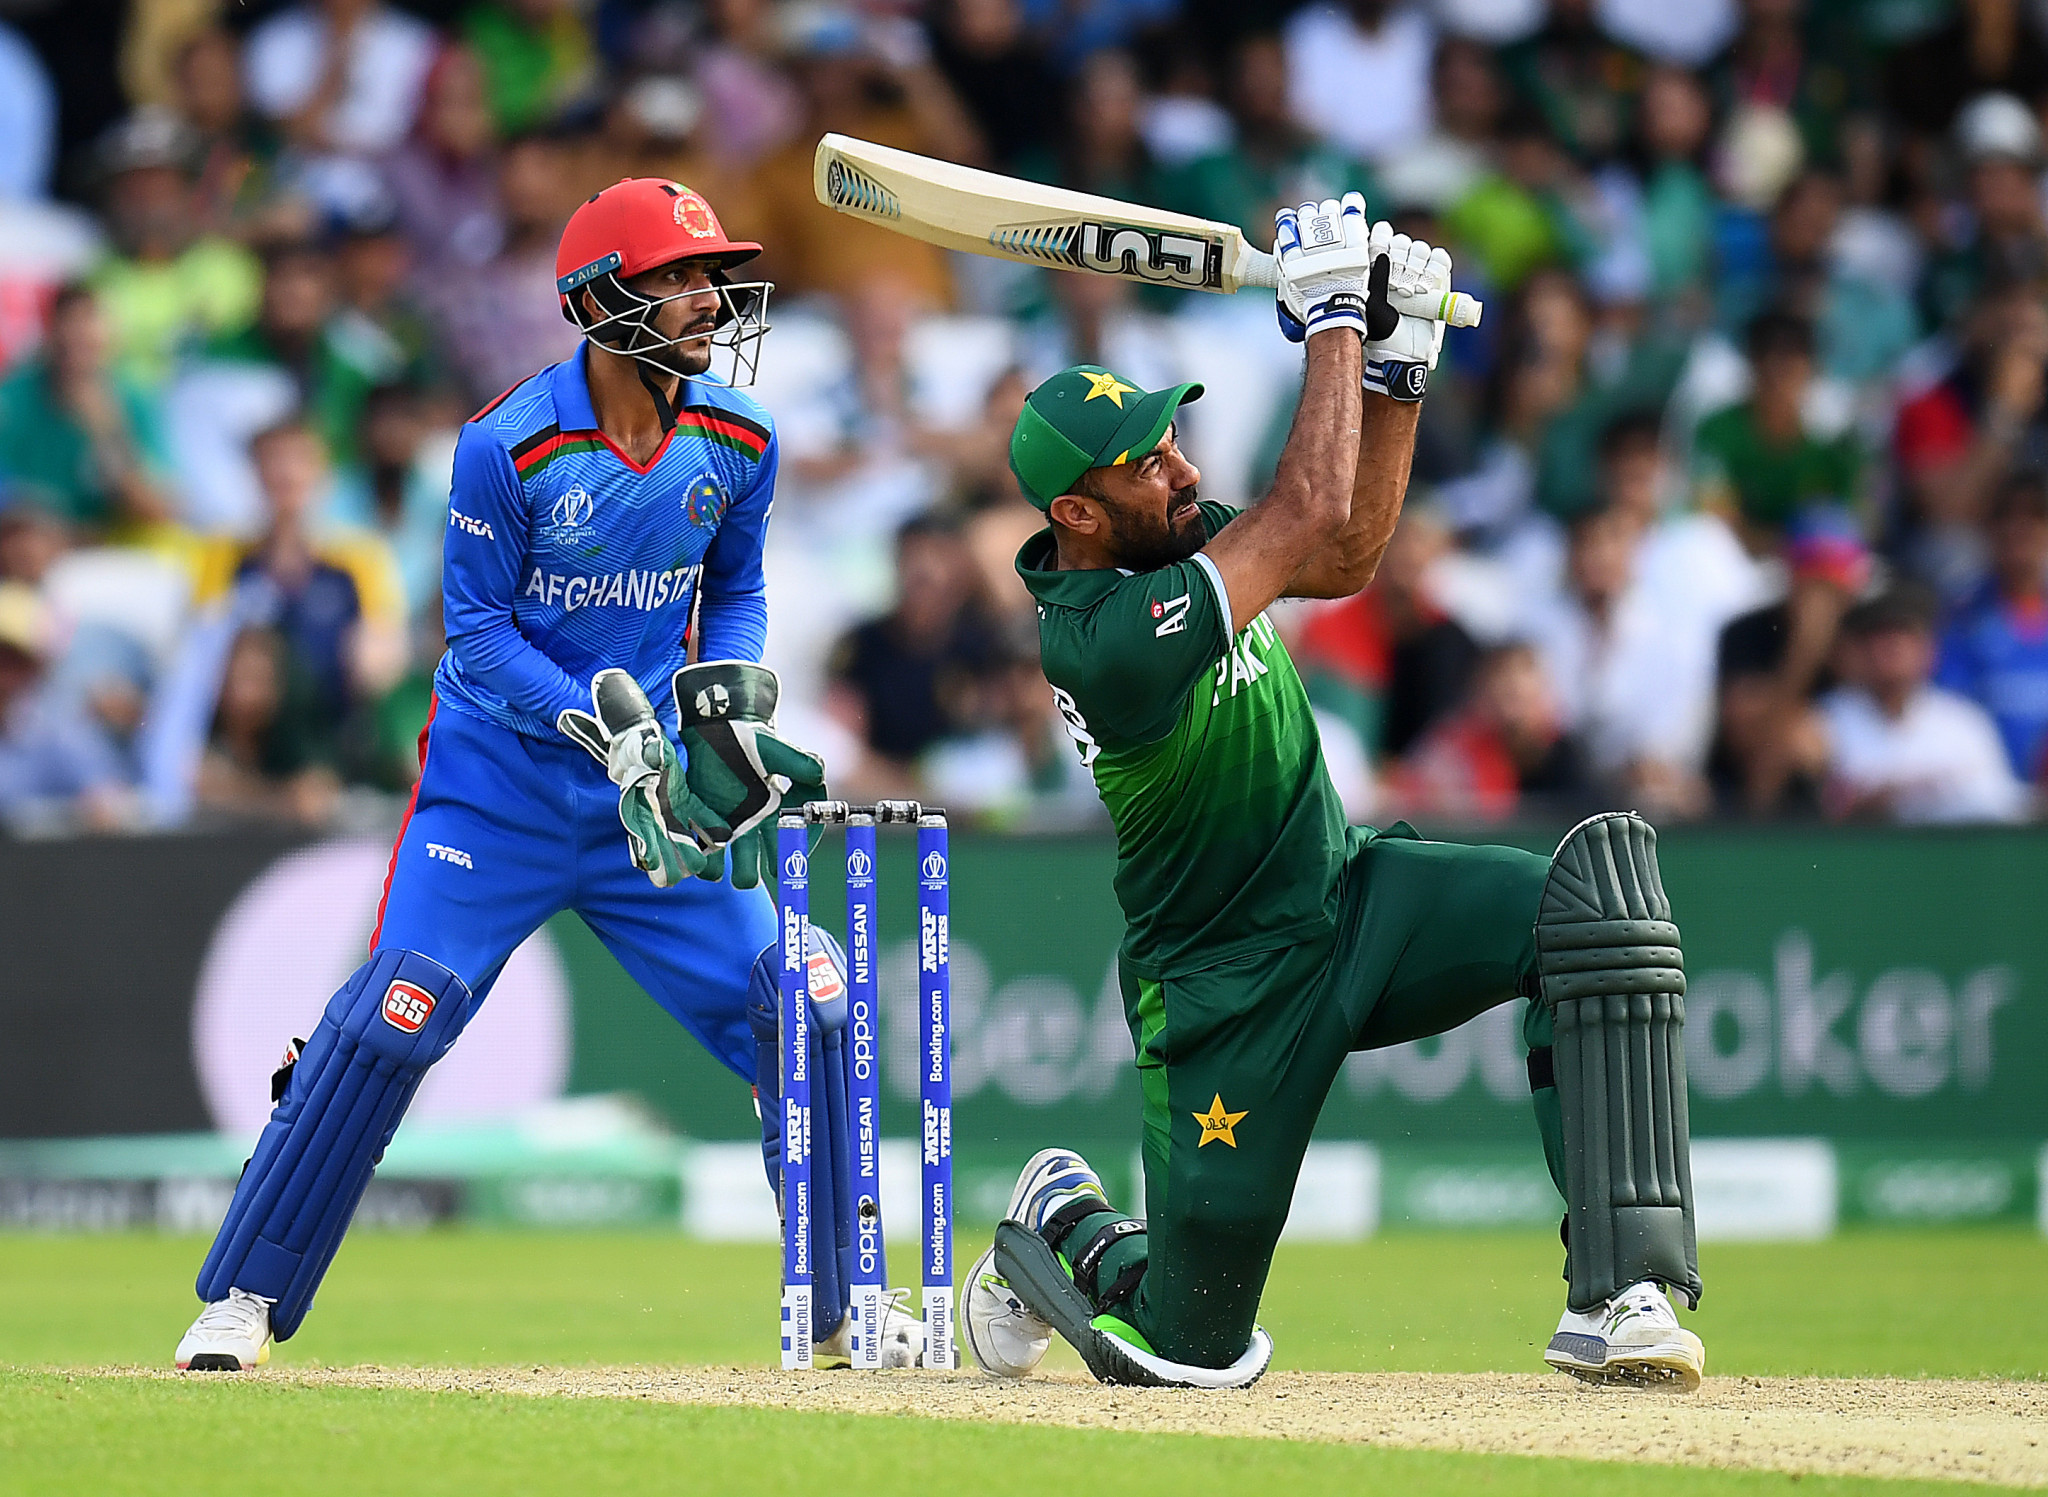 Thrilling Pakistan victory over Afghanistan puts pressure on England at ICC Cricket World Cup